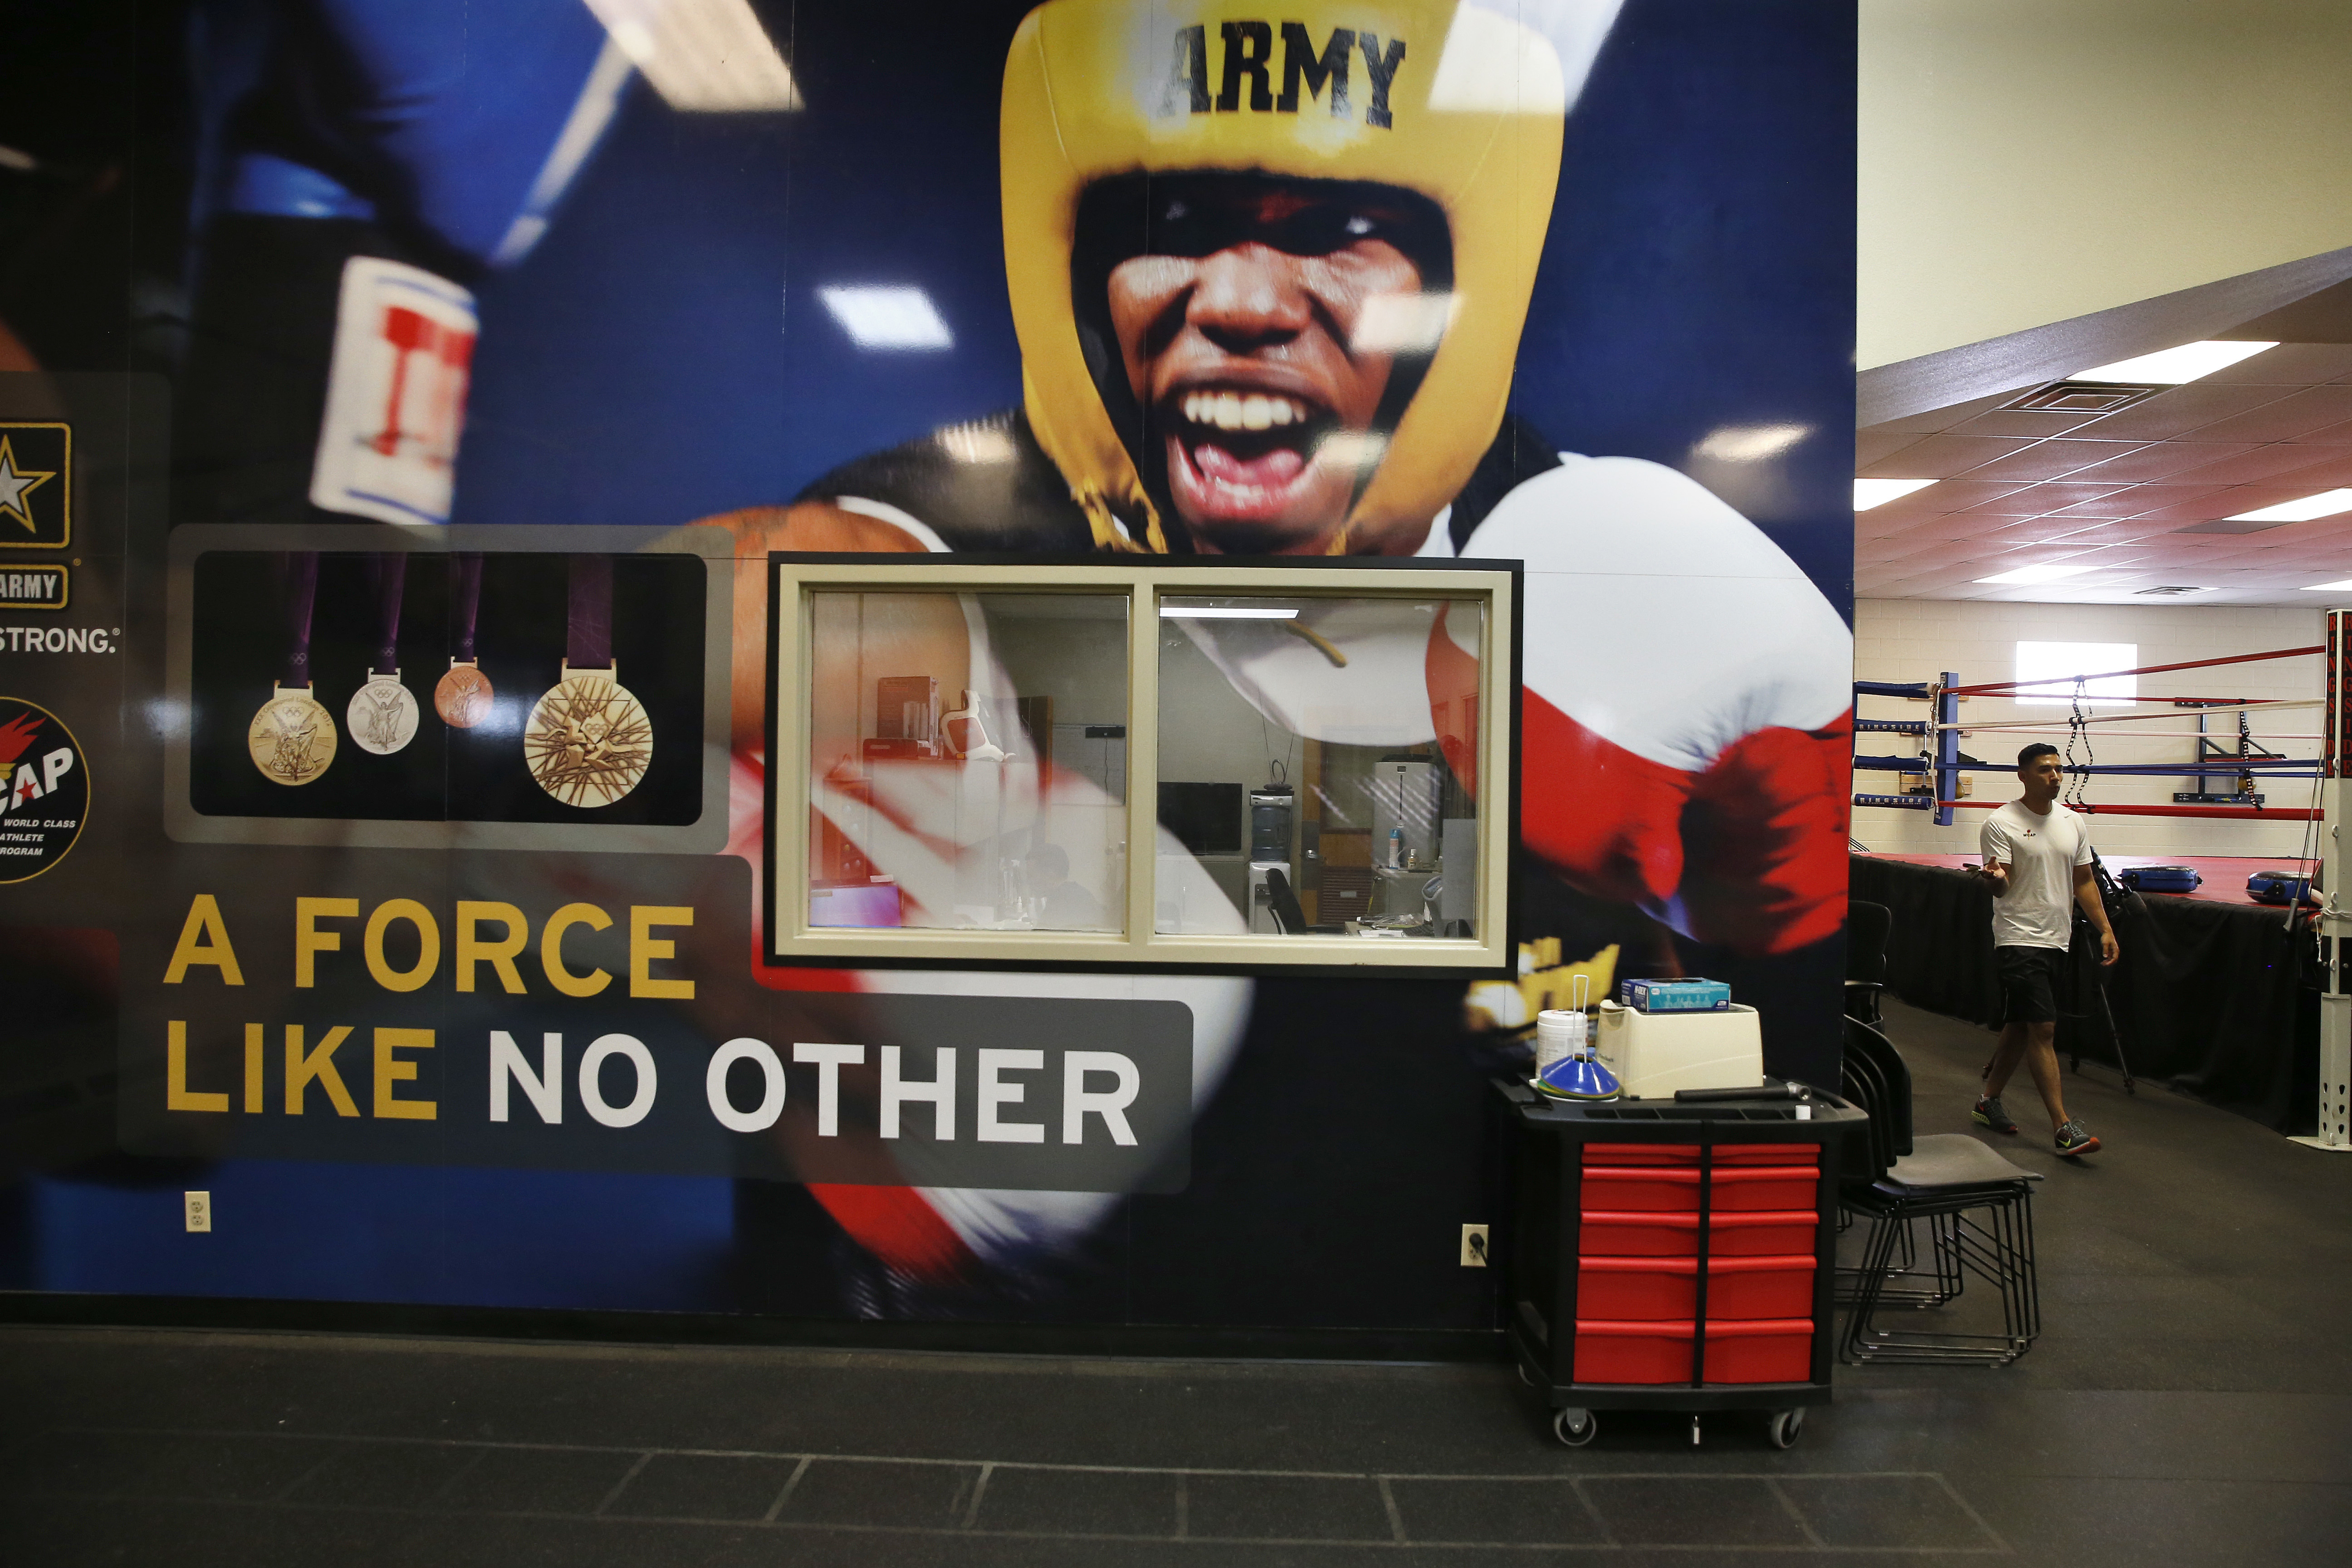 In this July 19, 2016 photo, a mural covers a wall in a gym inside the U.S. Army's World Class Athlete Program, at Fort Carson Army Base, outside Colorado Springs, Colo. About a dozen Army athletes are to compete for the United States at the Rio Olympics.